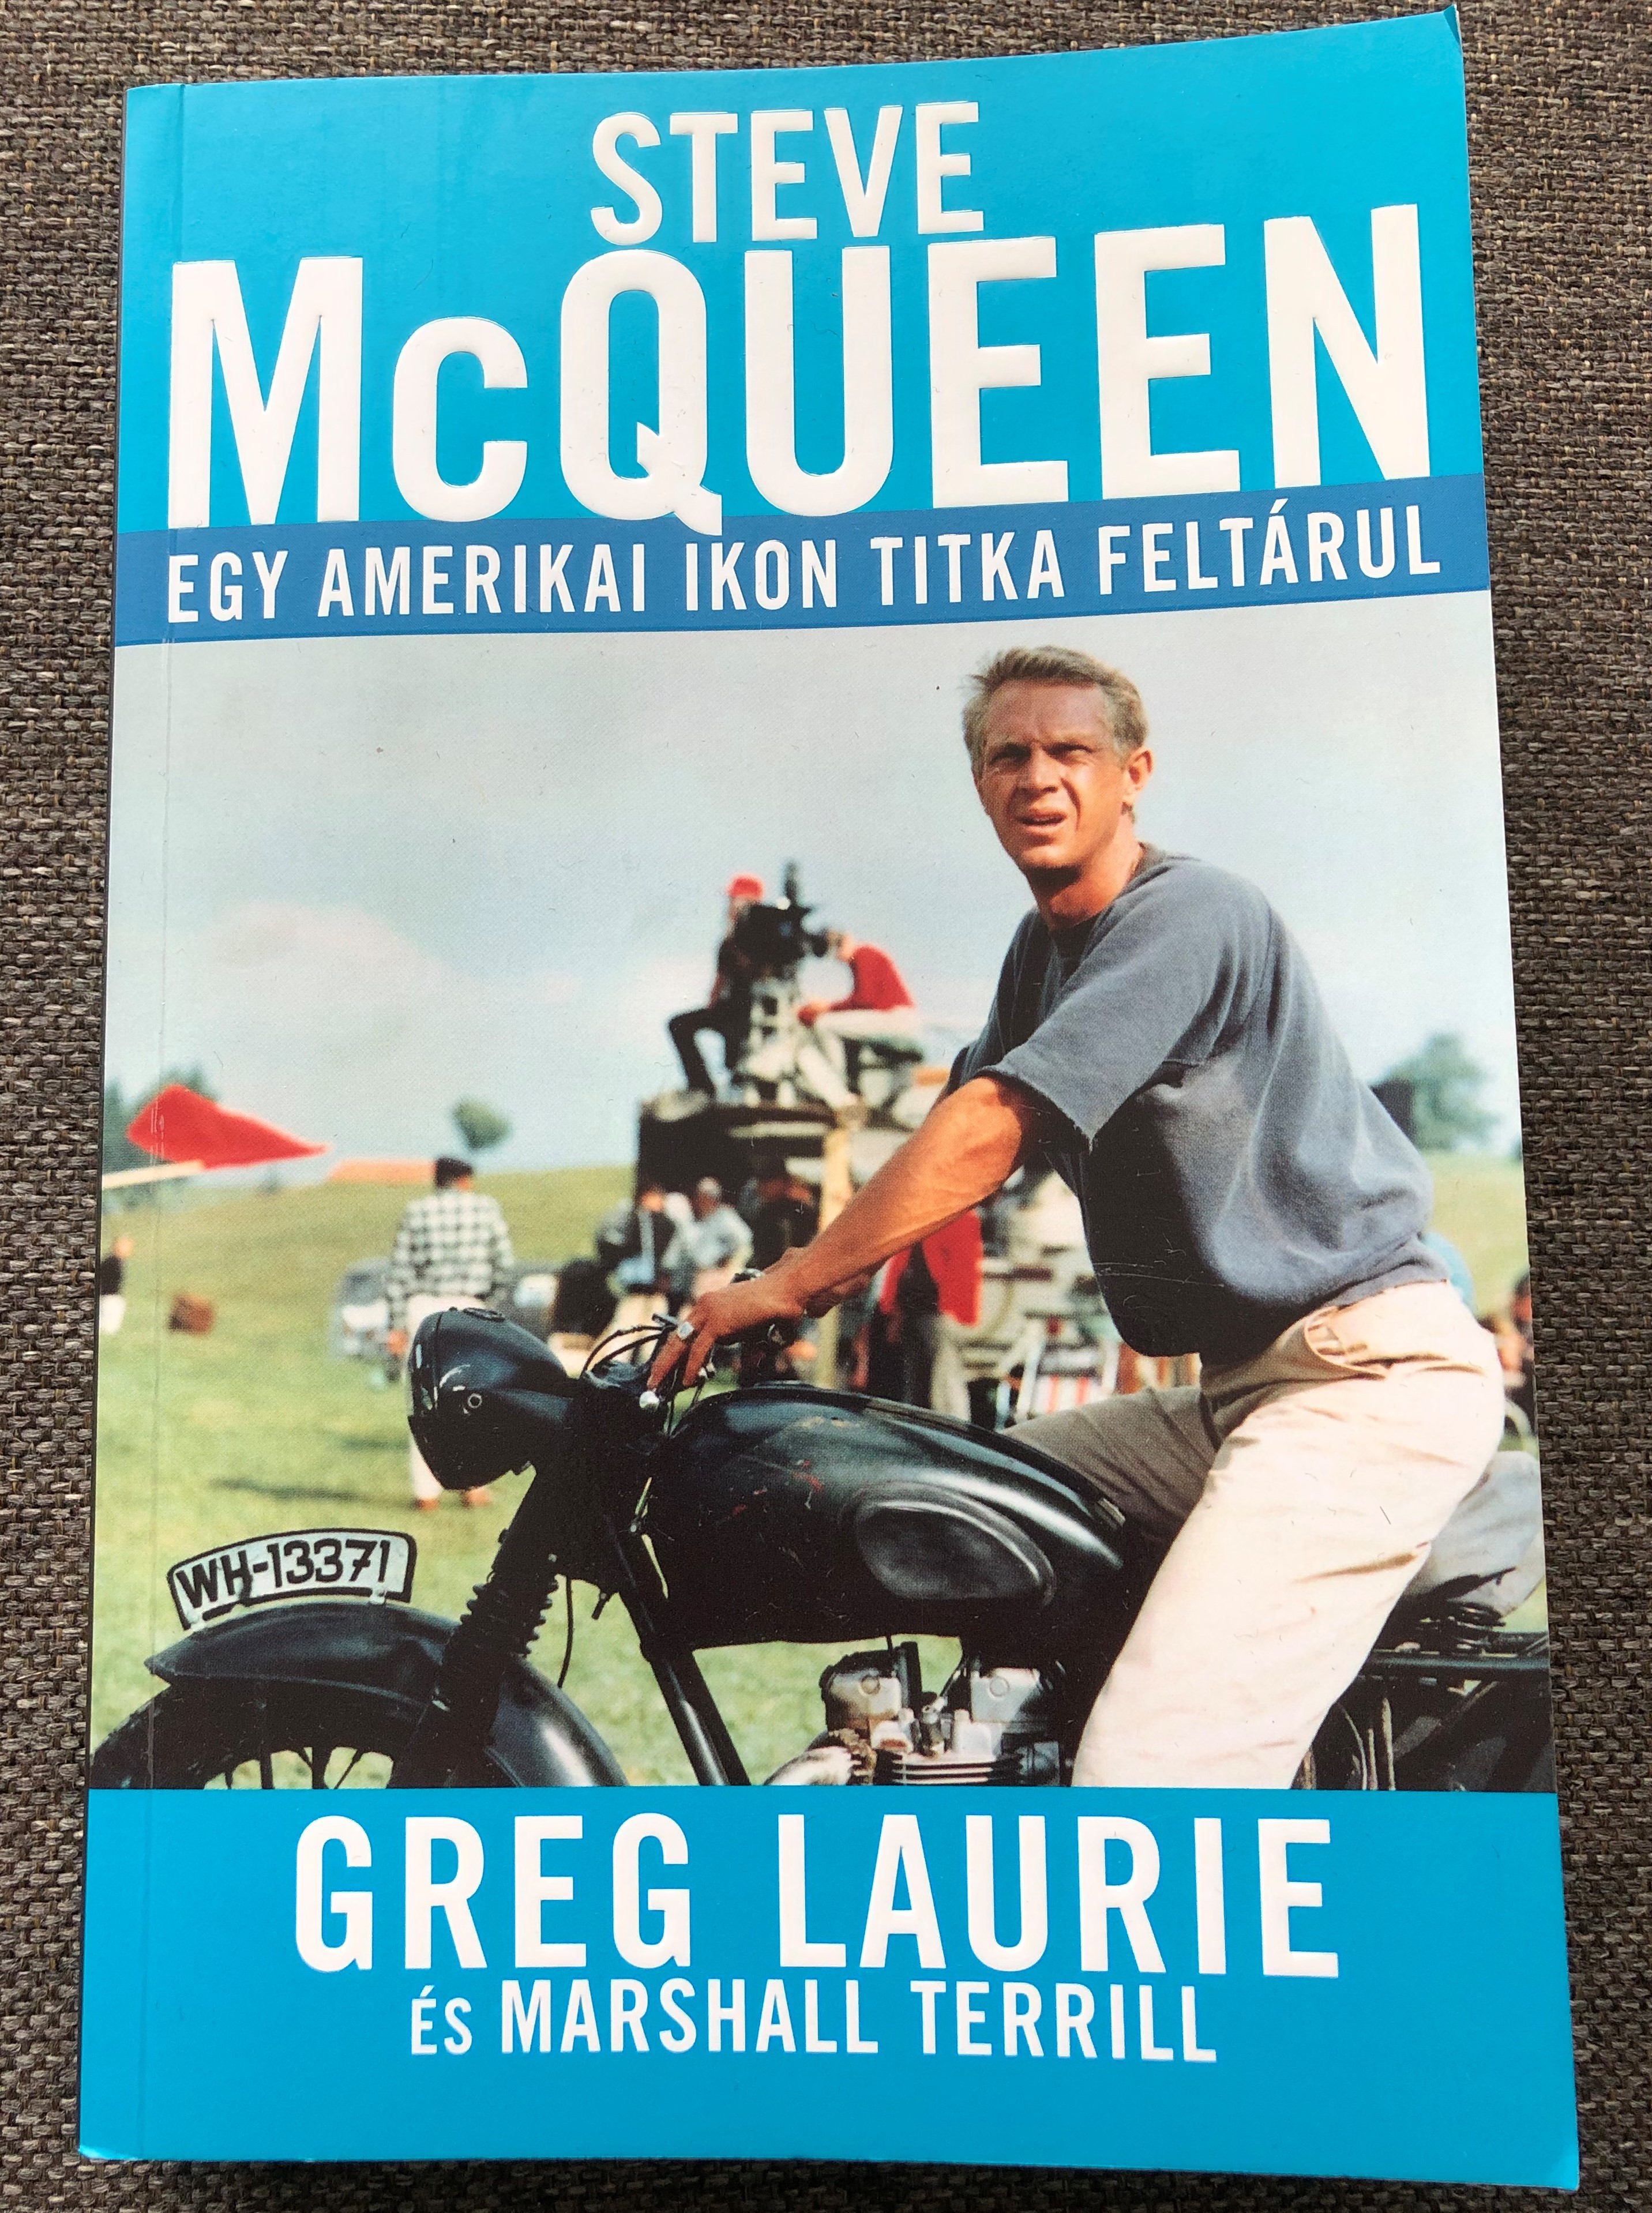 steve-mcqueen-egy-amerikai-ikon-titka-felt-rul-by-greg-laurie-hungarian-translation-of-steve-mcqueen-the-salvation-of-an-american-icon-1-.jpg